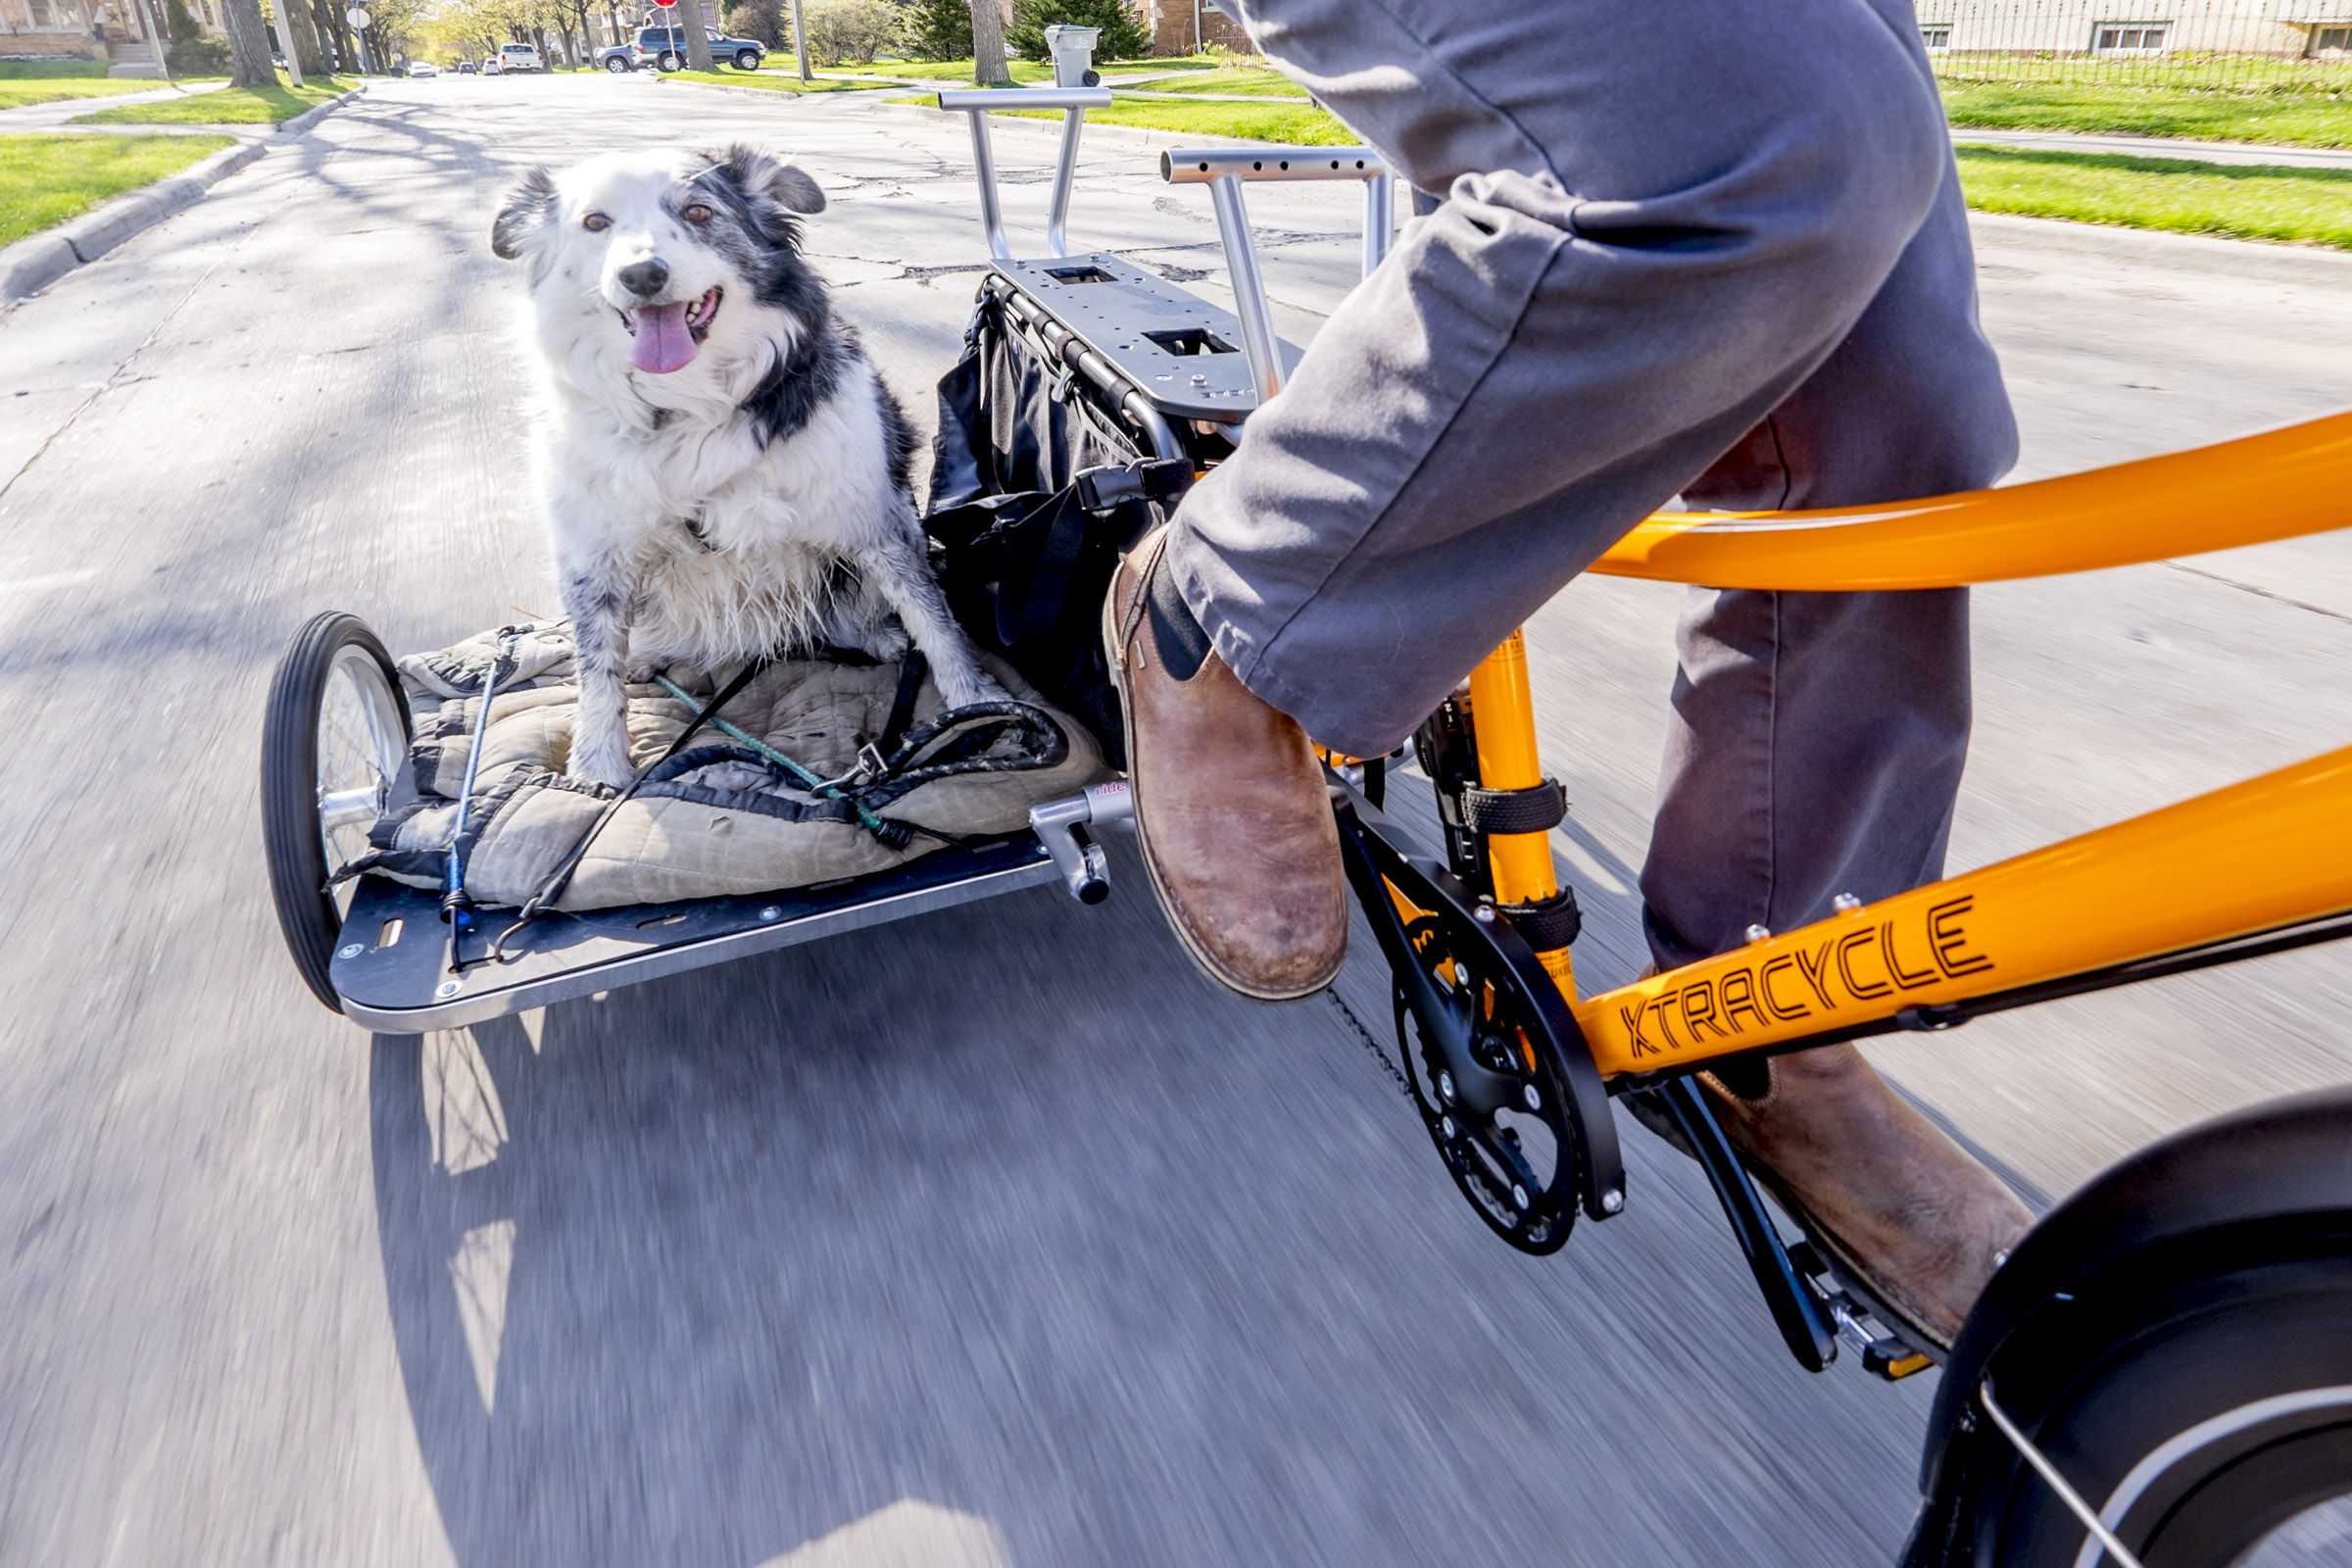 Apparently the sidecar only has room for one dog at a time. (Photo by Dave Schlawbowske)